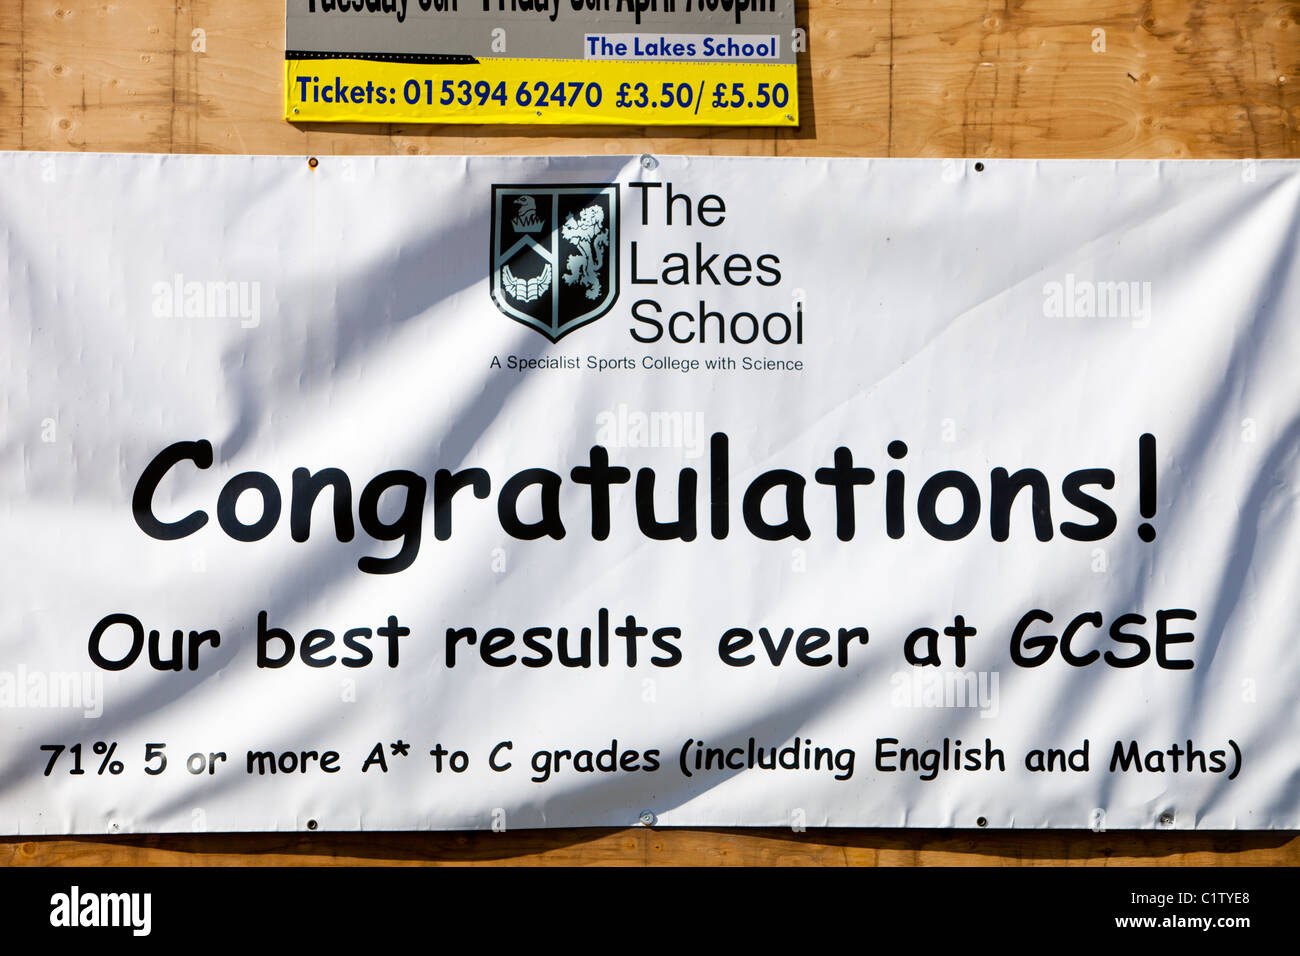 A banner outside the Lakes School in Windermere, celebrating the GCSE results. - Stock Image